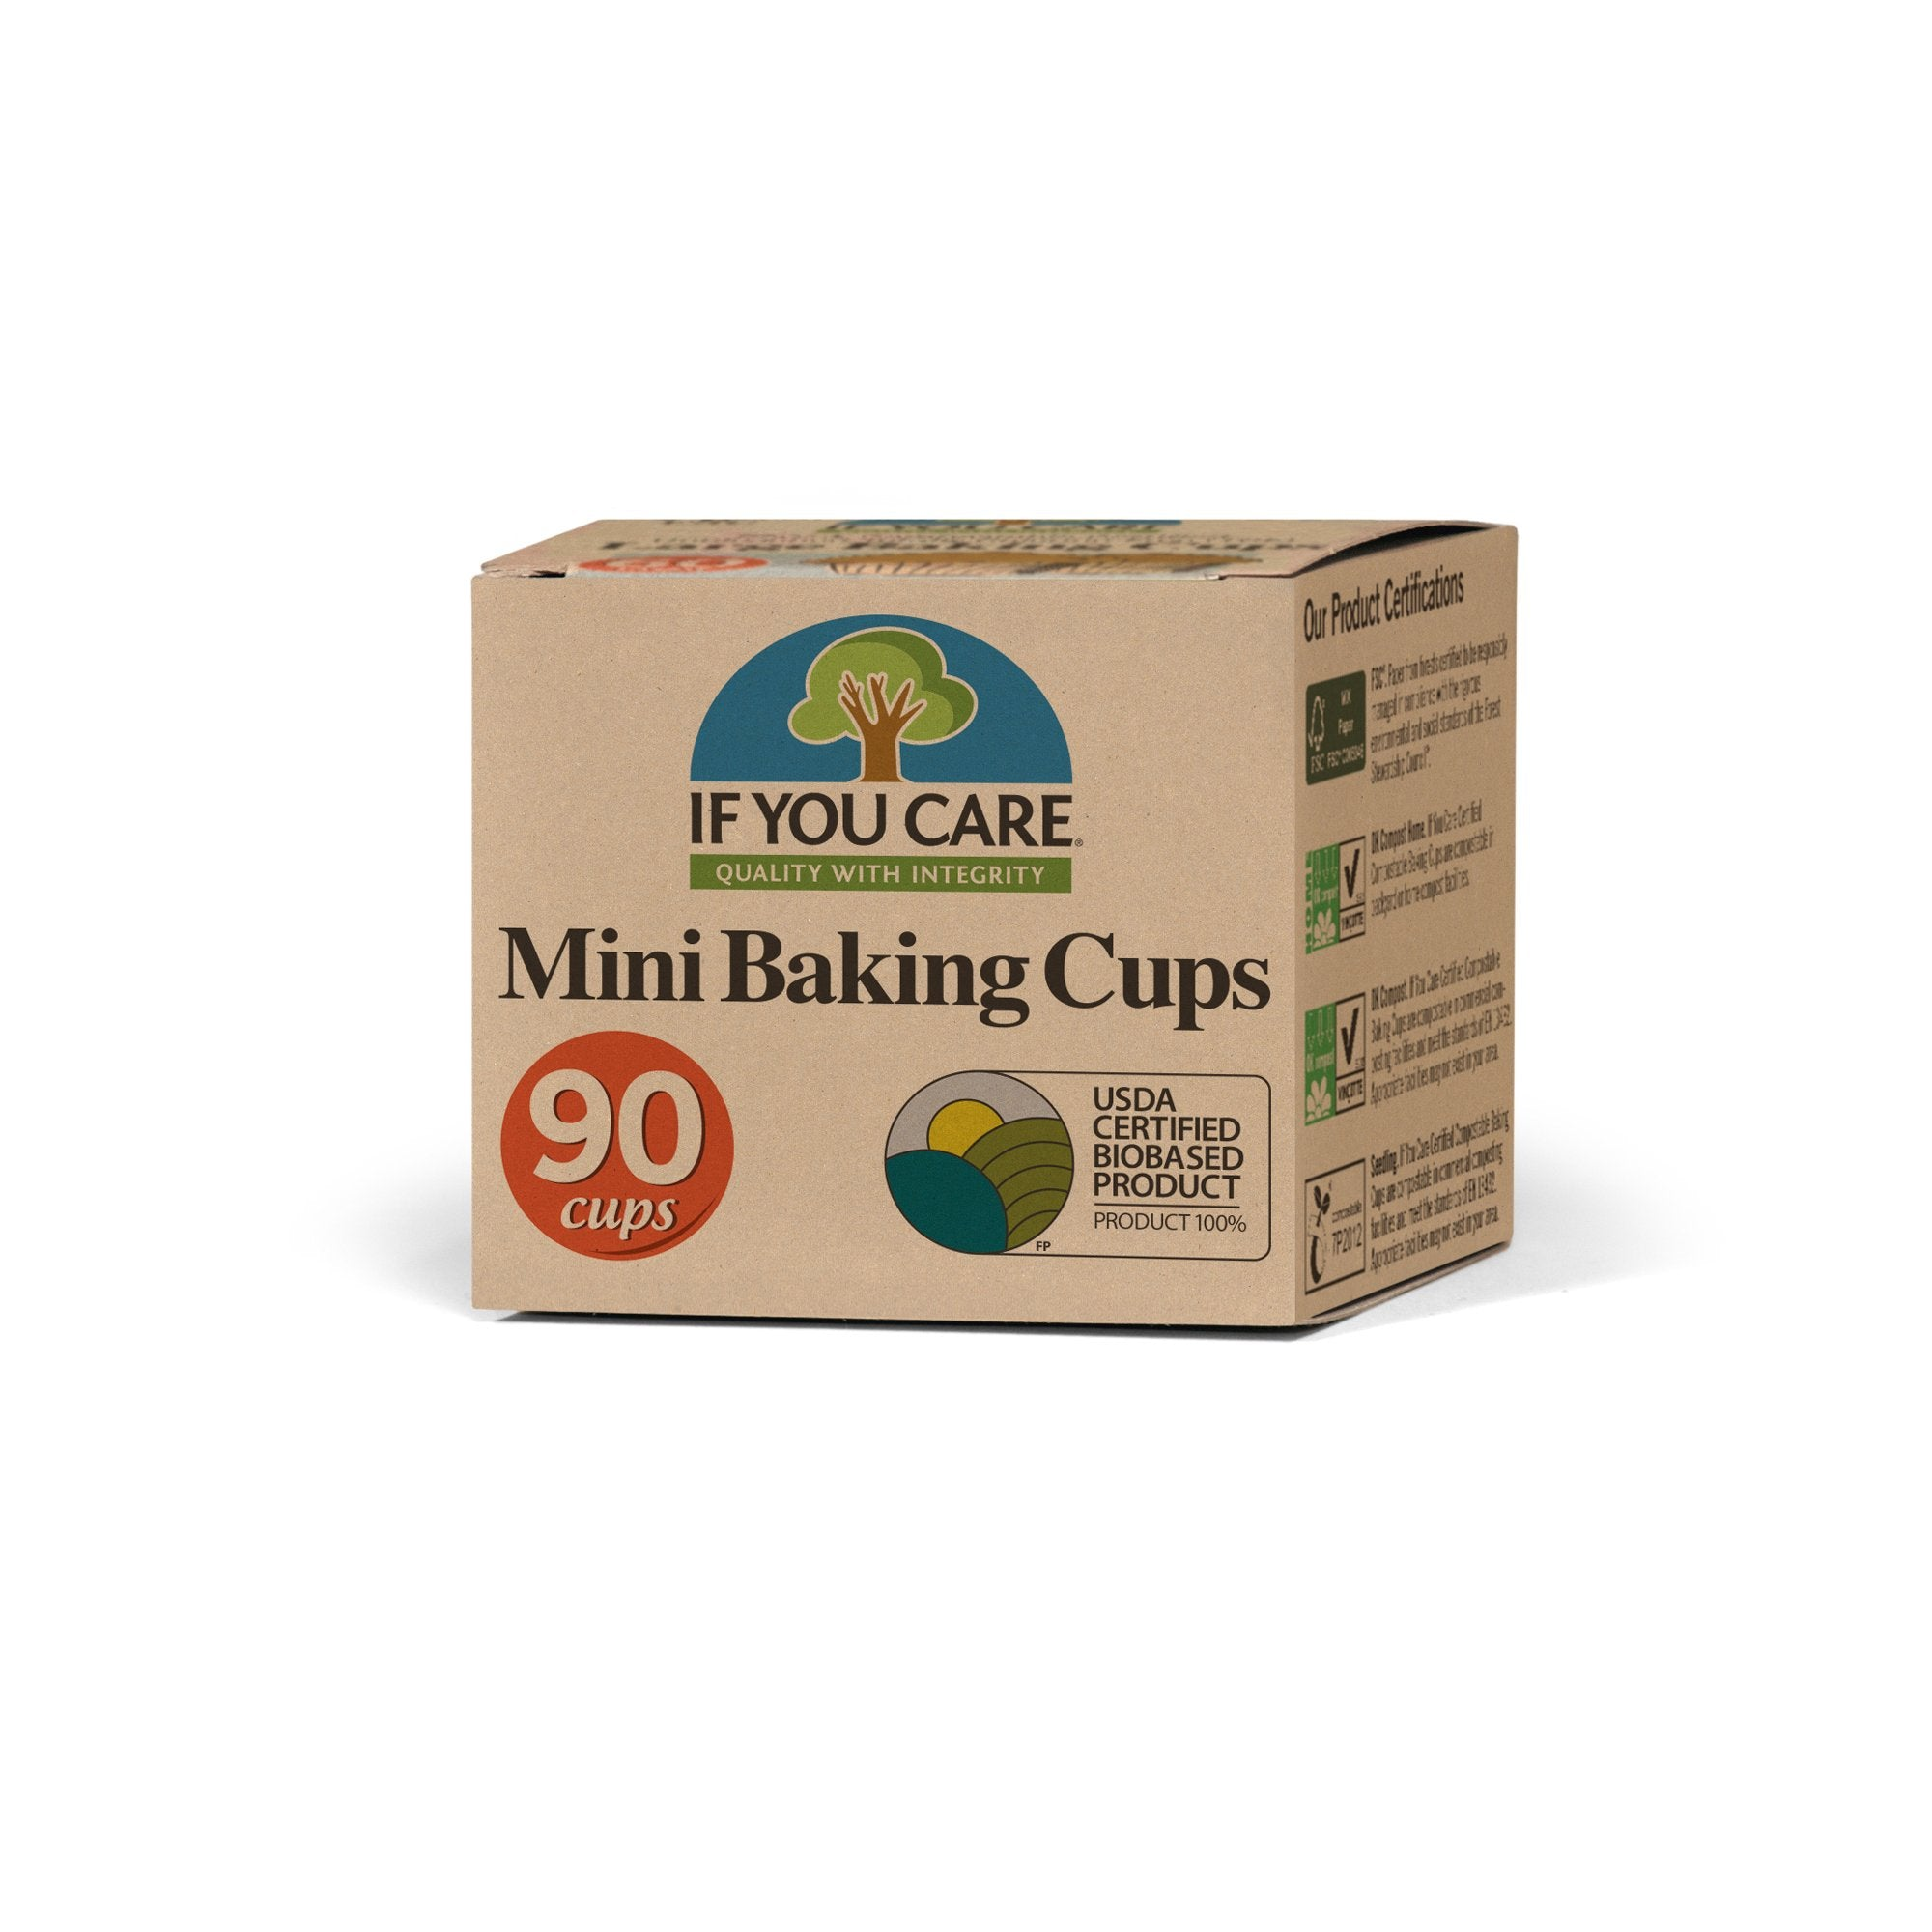 mini baking cups in package. 90 cups . usda certified biobased product seal